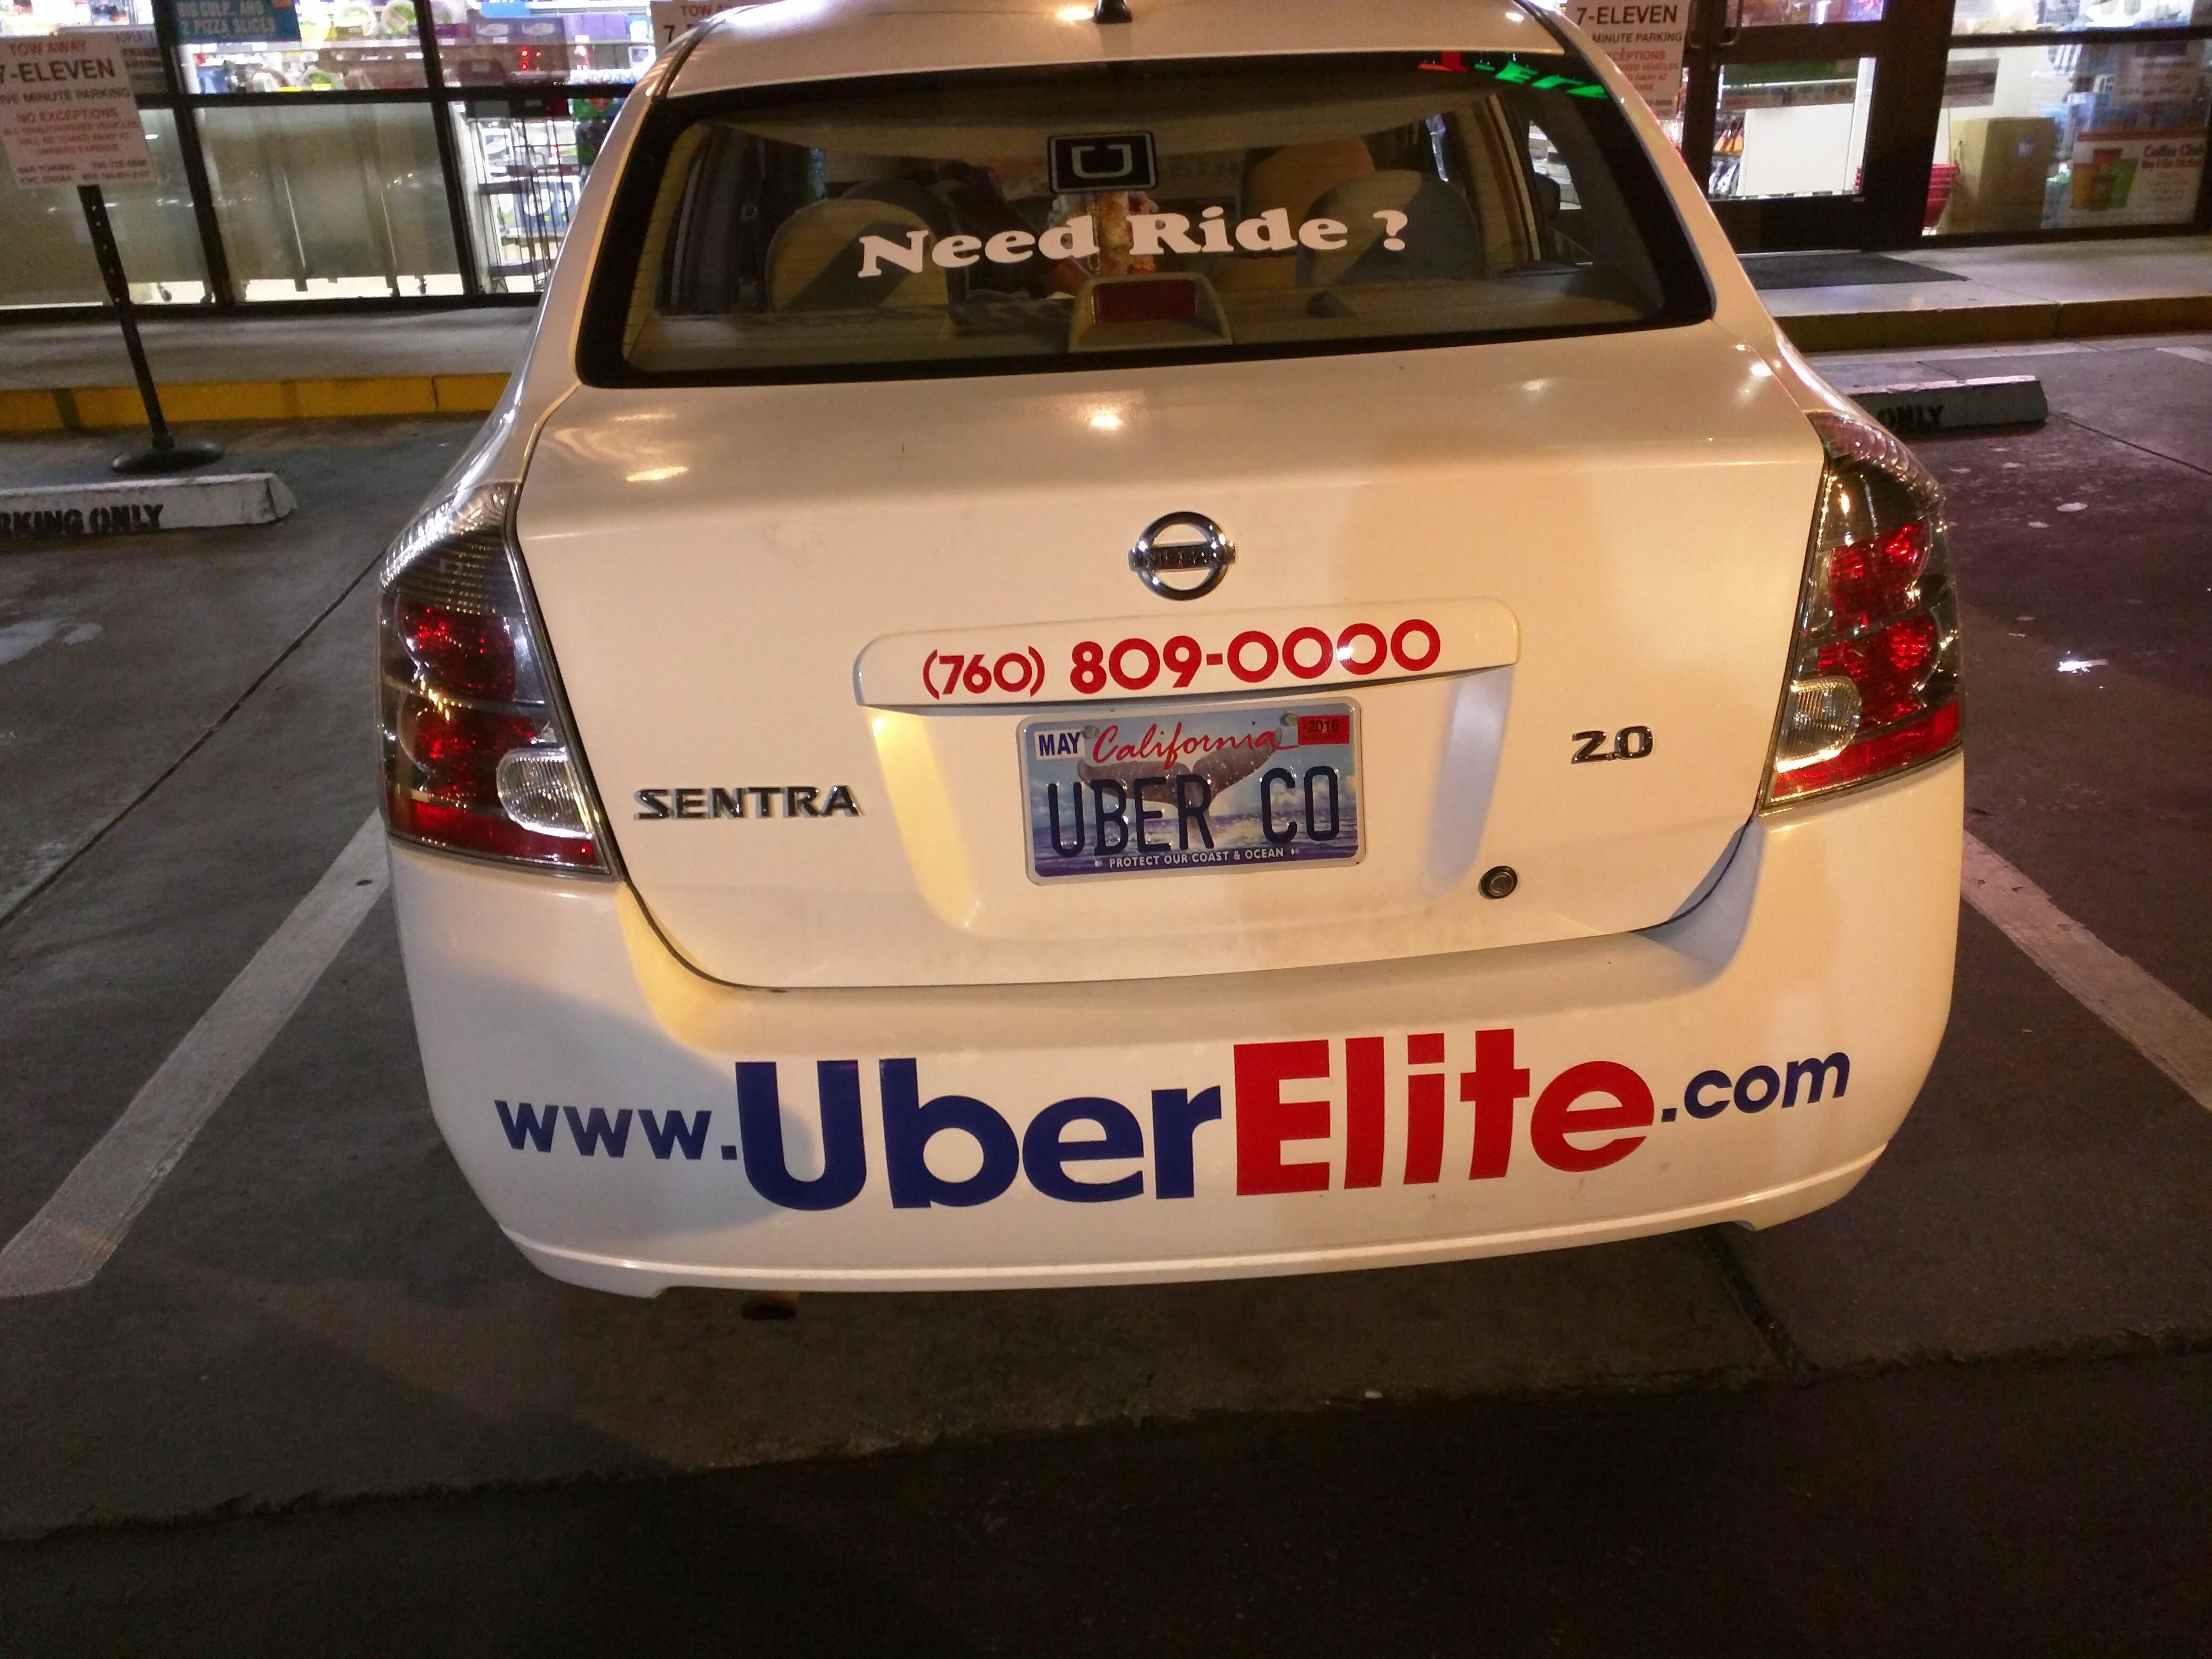 Fake Uber driver outed | San Diego Reader